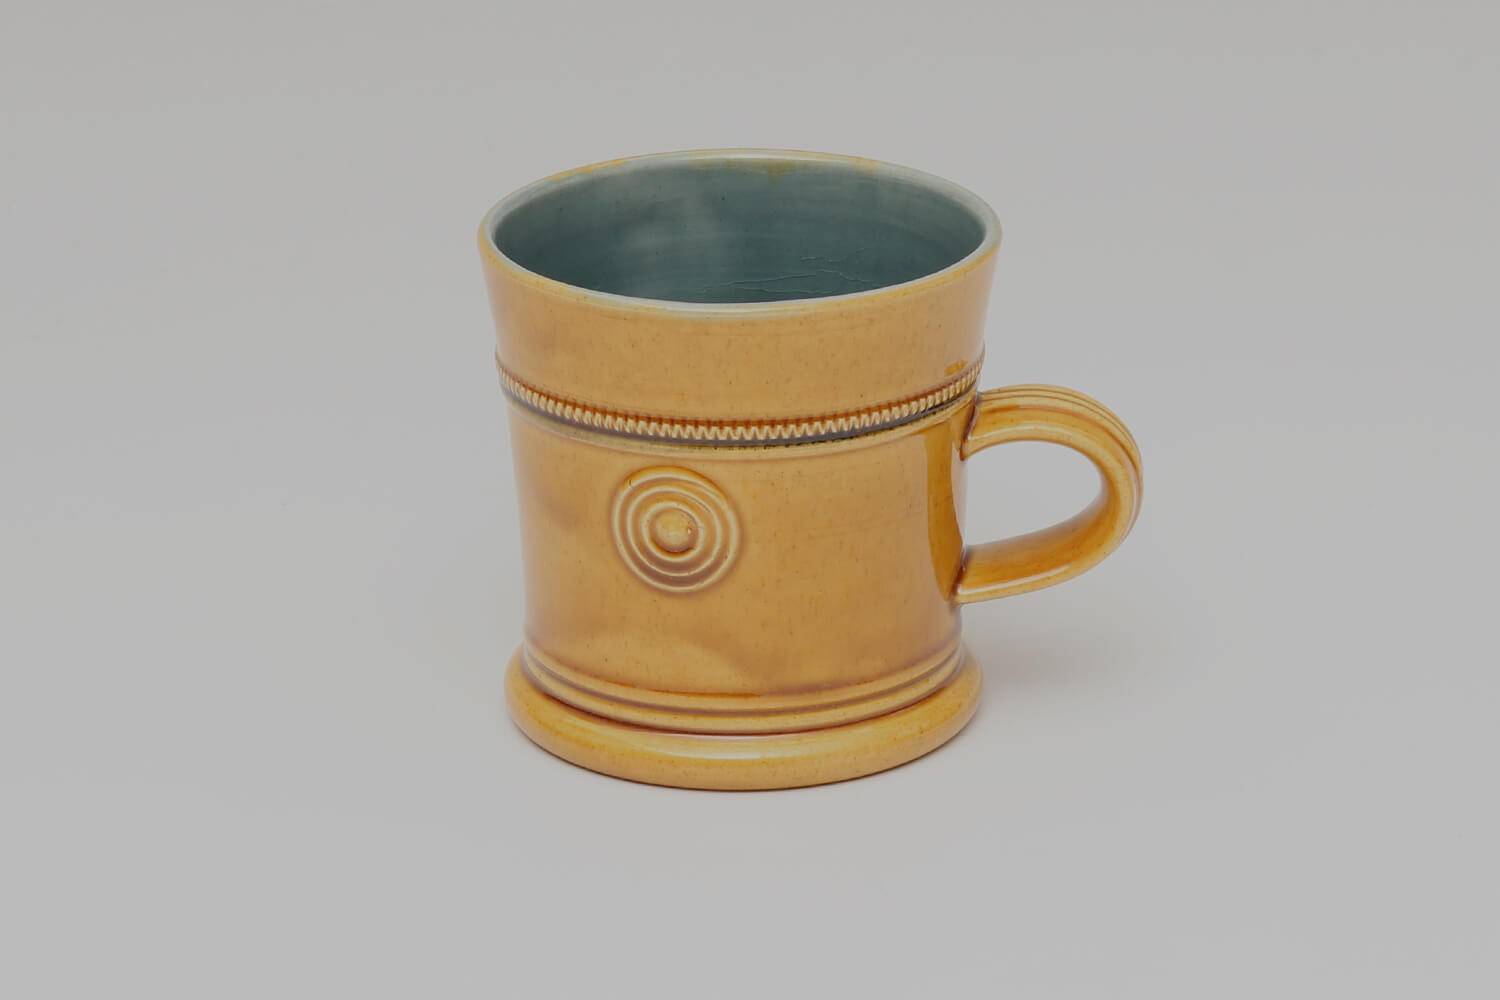 Walter Keeler Ceramic Earthenware Mug 076